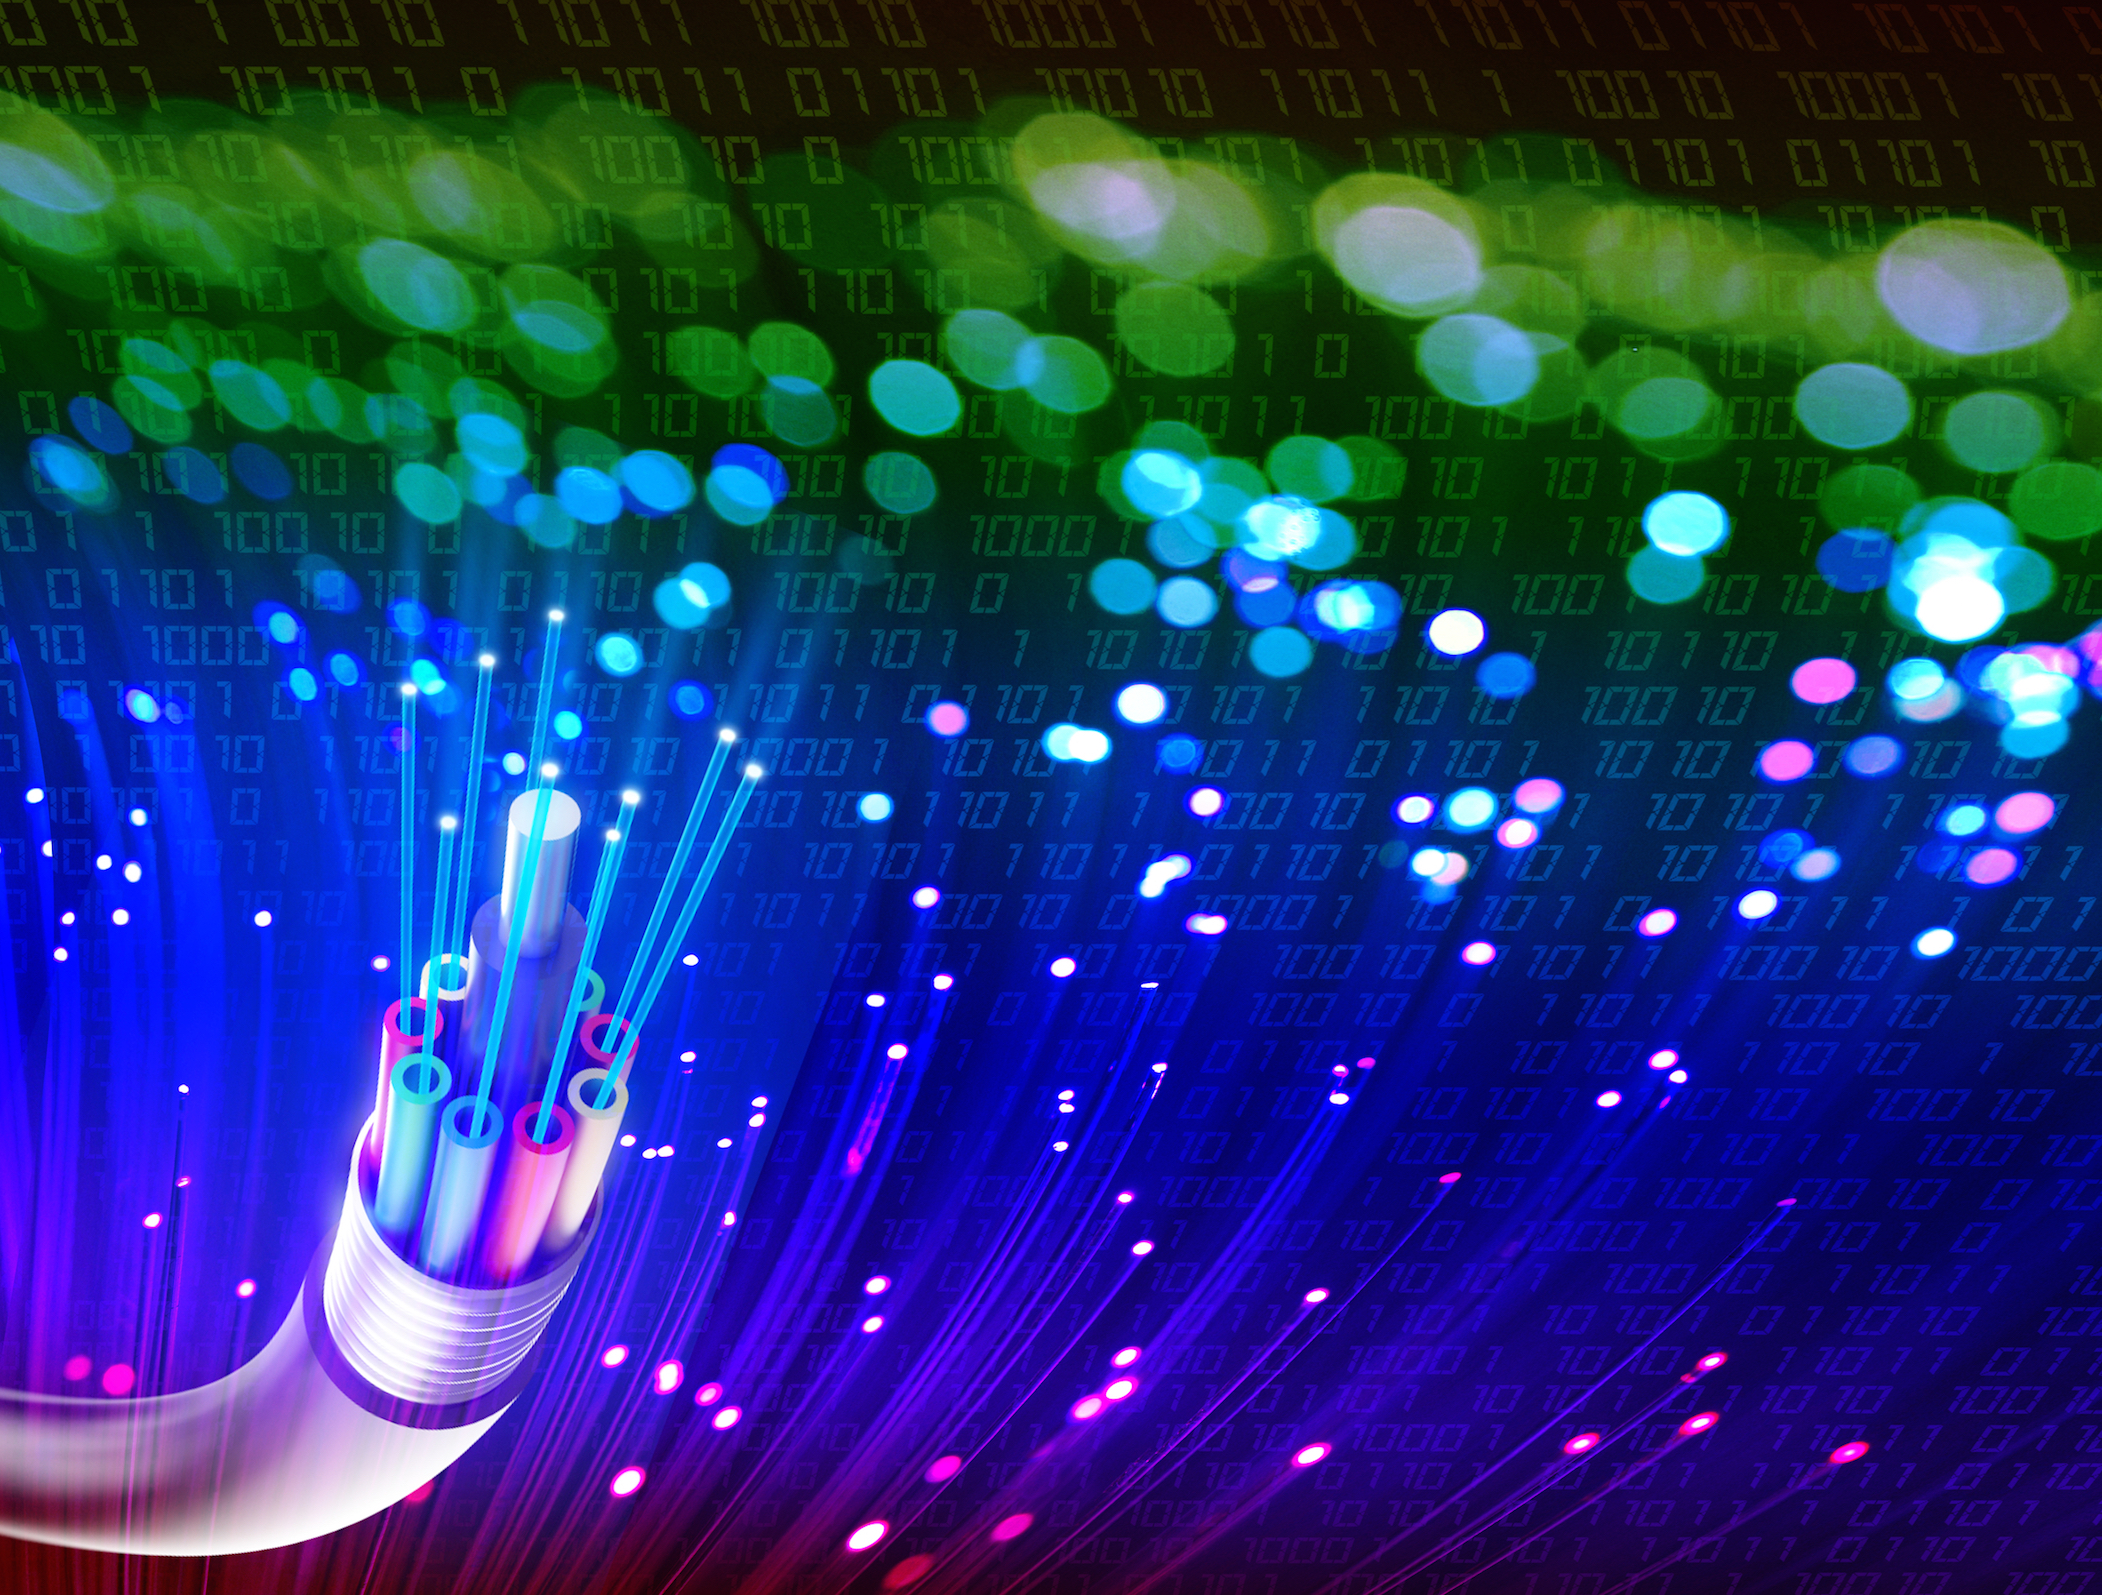 MPs slam government for gigabit broadband and 5G rollout delays